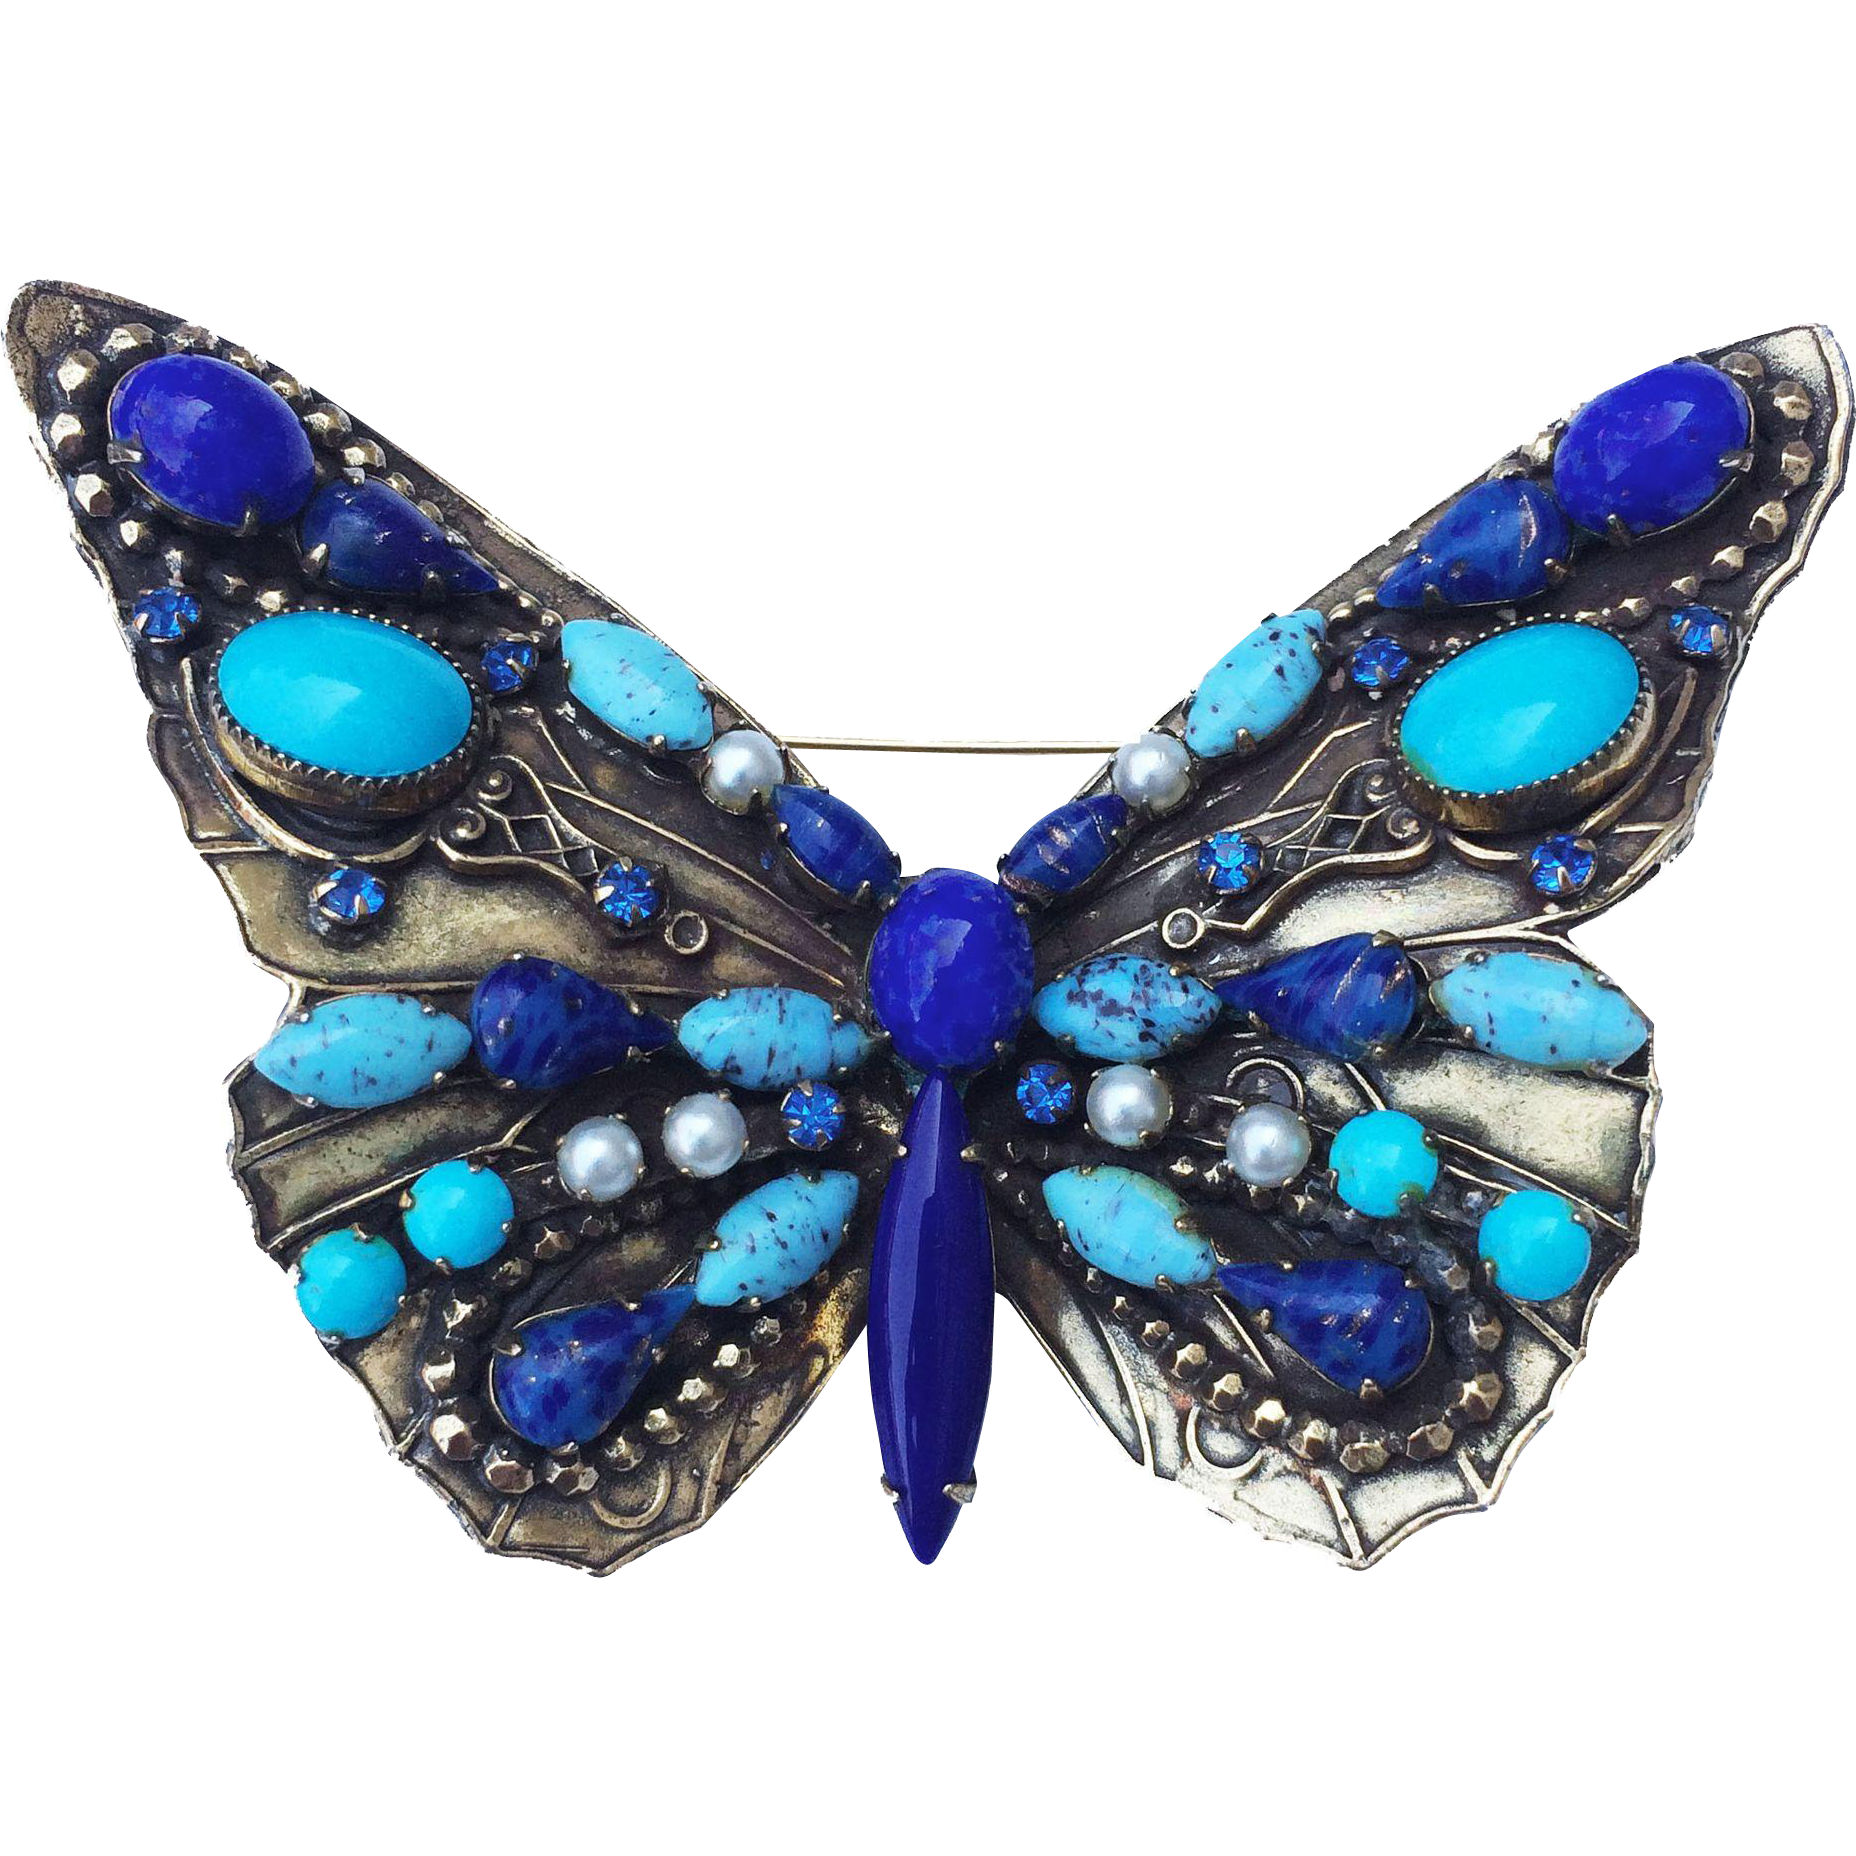 Original by Robert Lapis and Turquoise Color Glass Cabochon Giant Butterfly Brooch